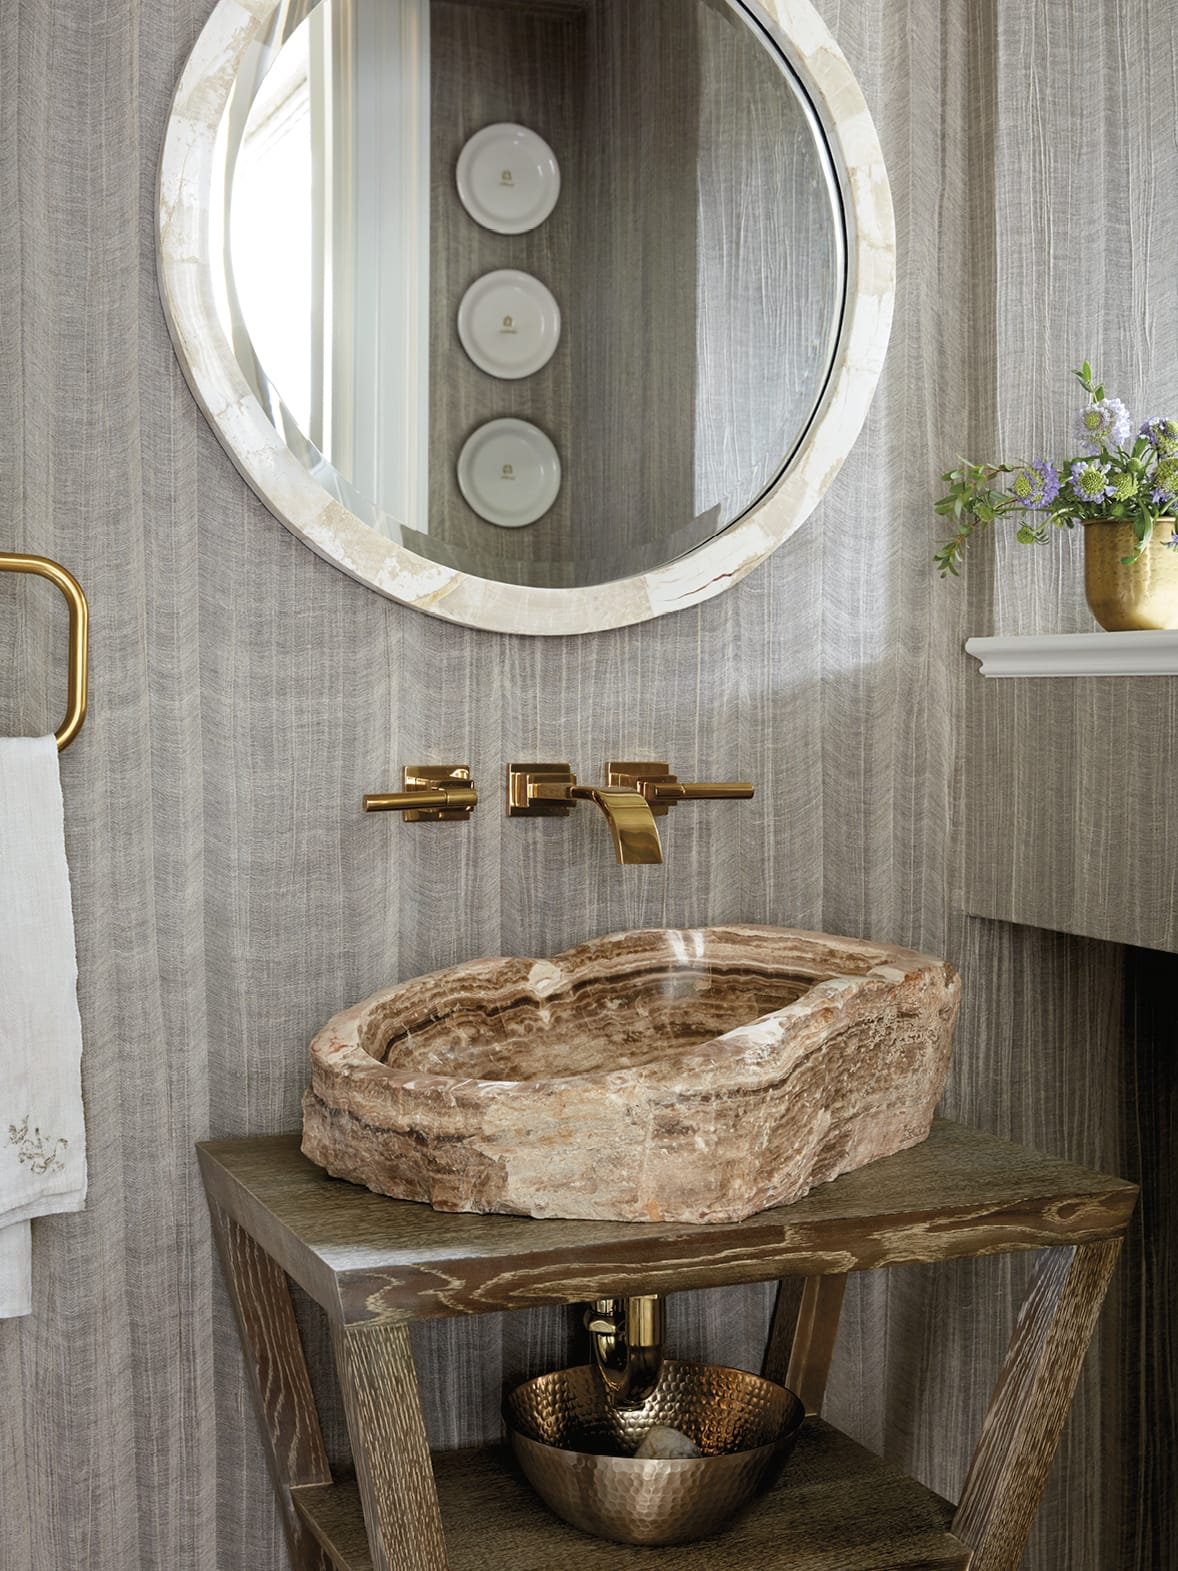 Bathroom with hand-carved stone sink